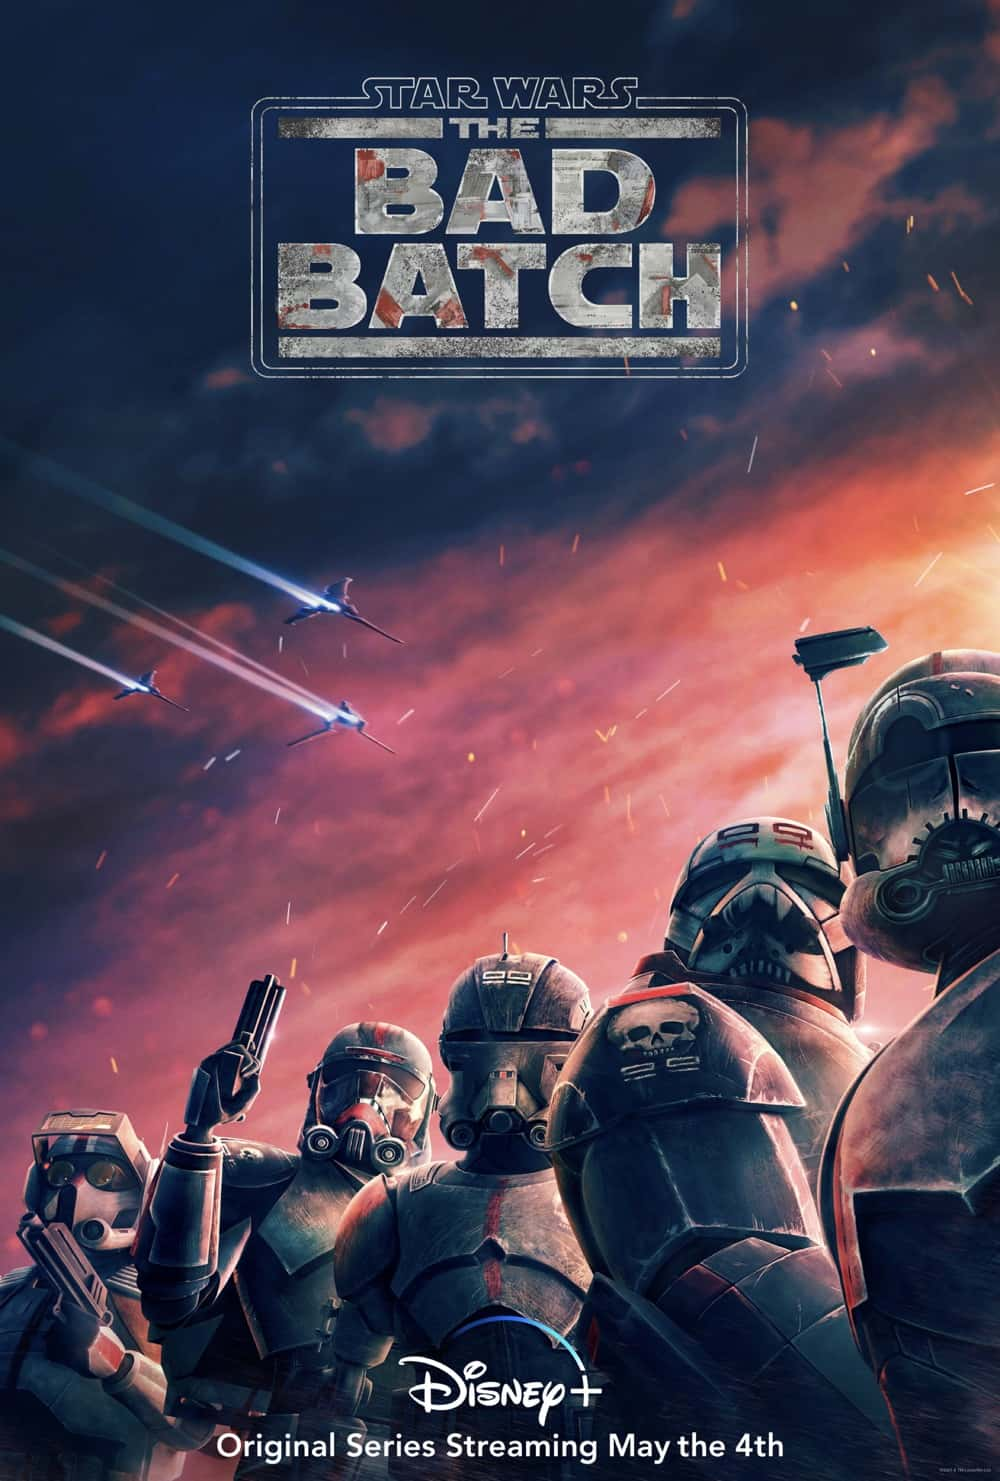 STAR WARS THE BAD BATCH Poster Key Art